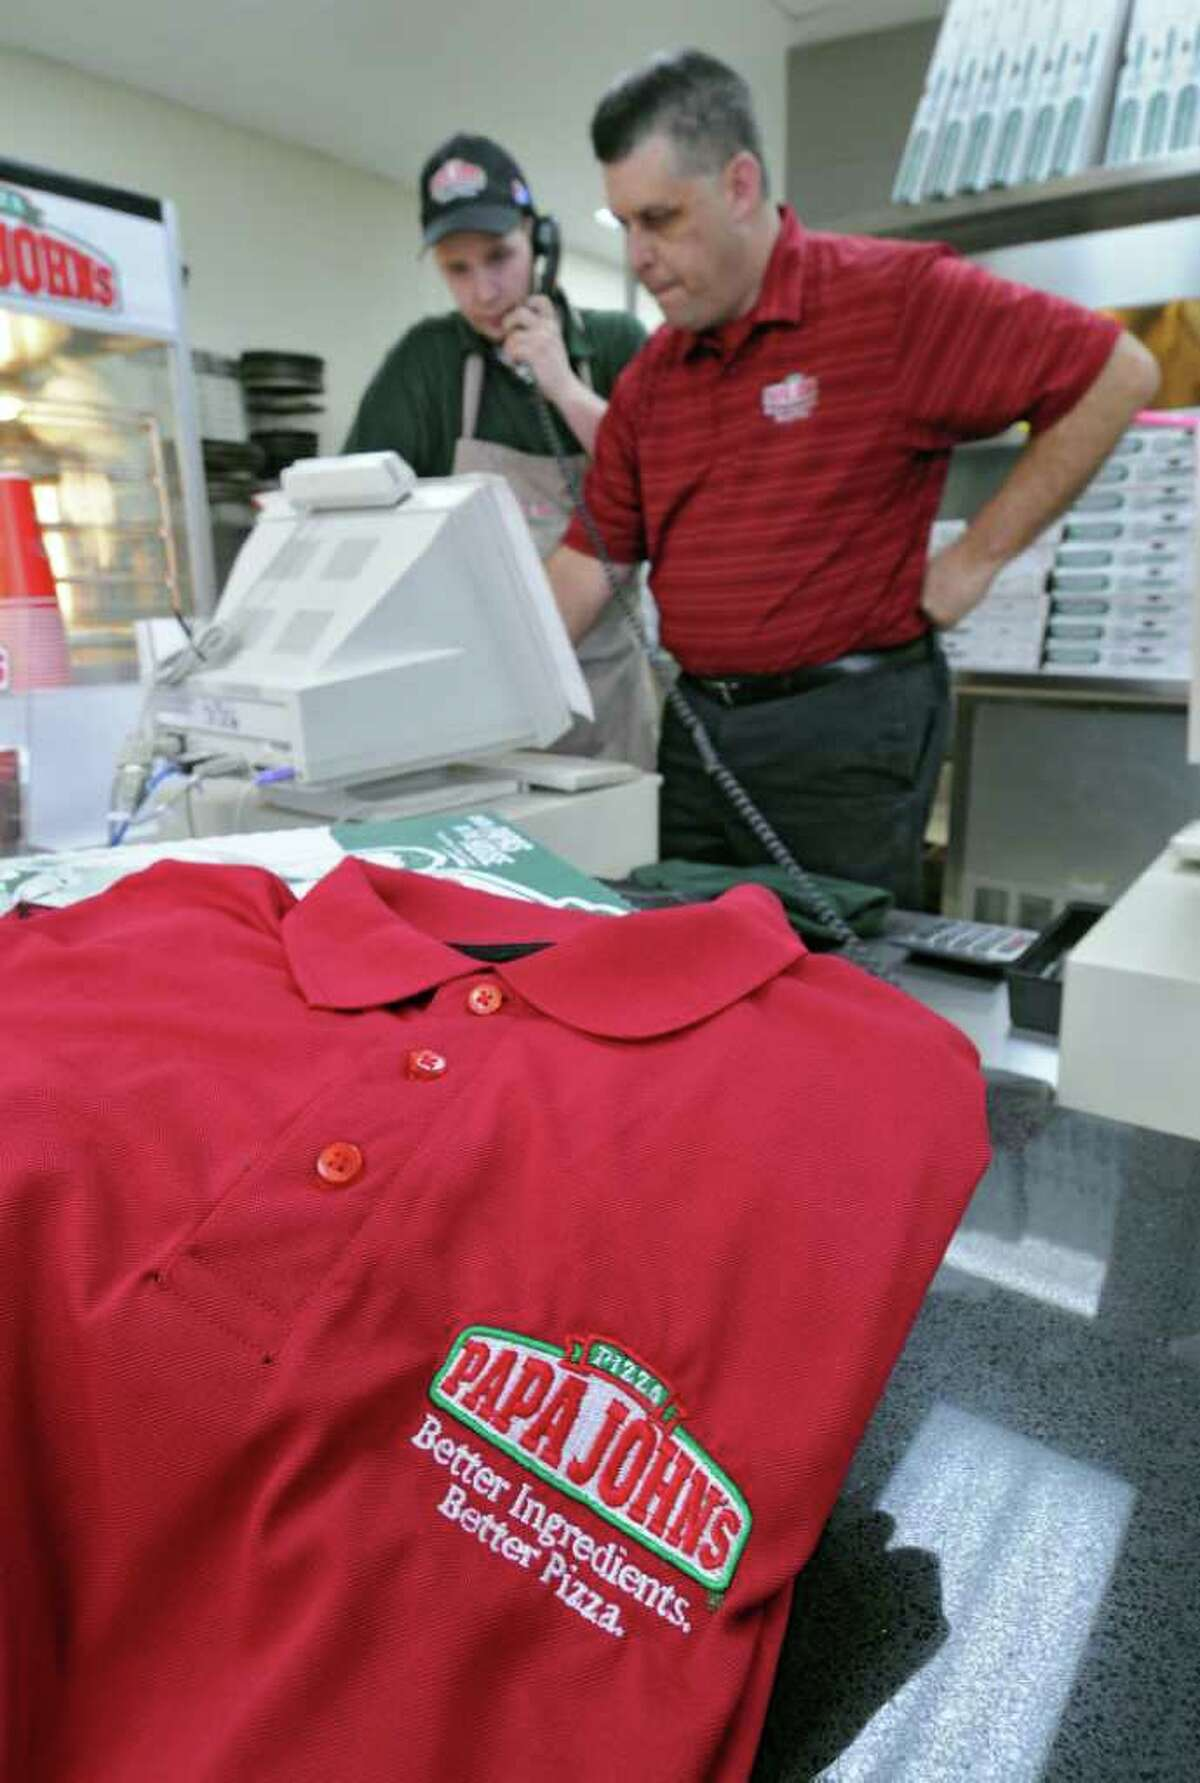 Rick Young, operating partner for the Papa John's pizza on Troy Schenectady Road, right, works with shift leader Jeremy Dudley, near an employee workshirt, on Tuesday Feb. 7, 2012 in Latham, NY. The state fined the store $5000 for not having enough work shirts for their employees. (Philip Kamrass / Times Union )